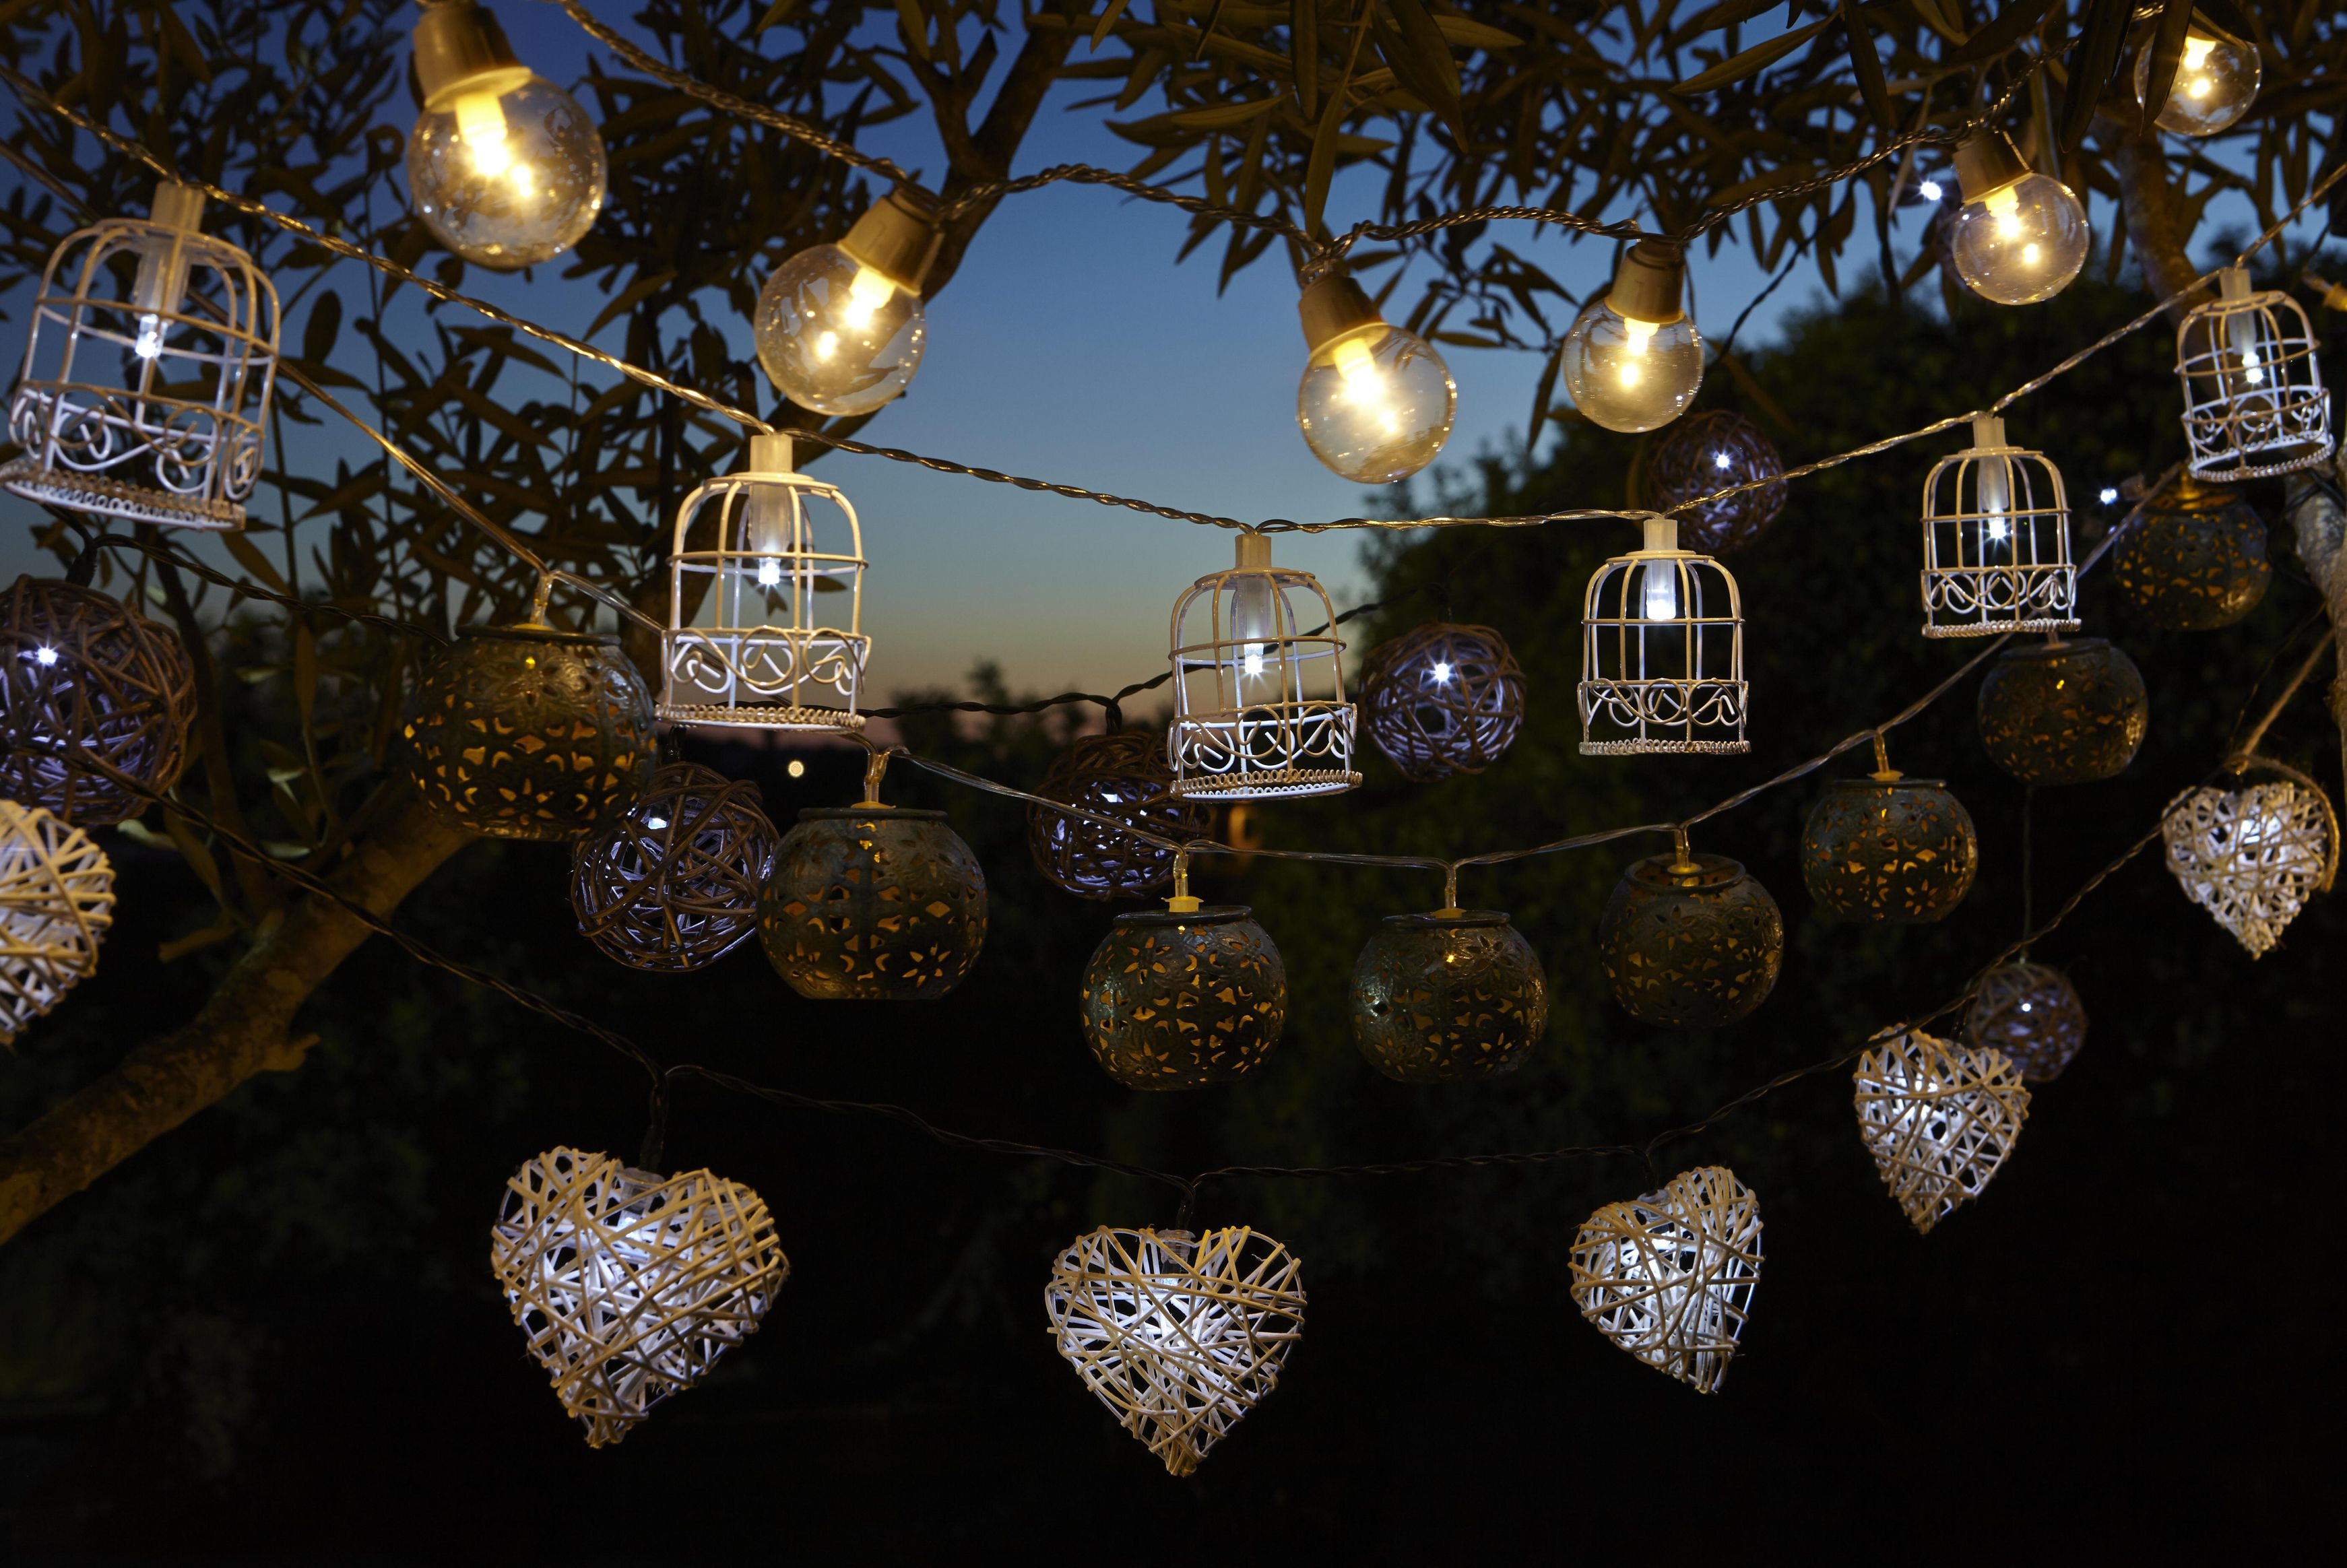 B Q Christmas Decorations Of Outdoor Lighting Buying Guide Ideas Advice Diy At B Q